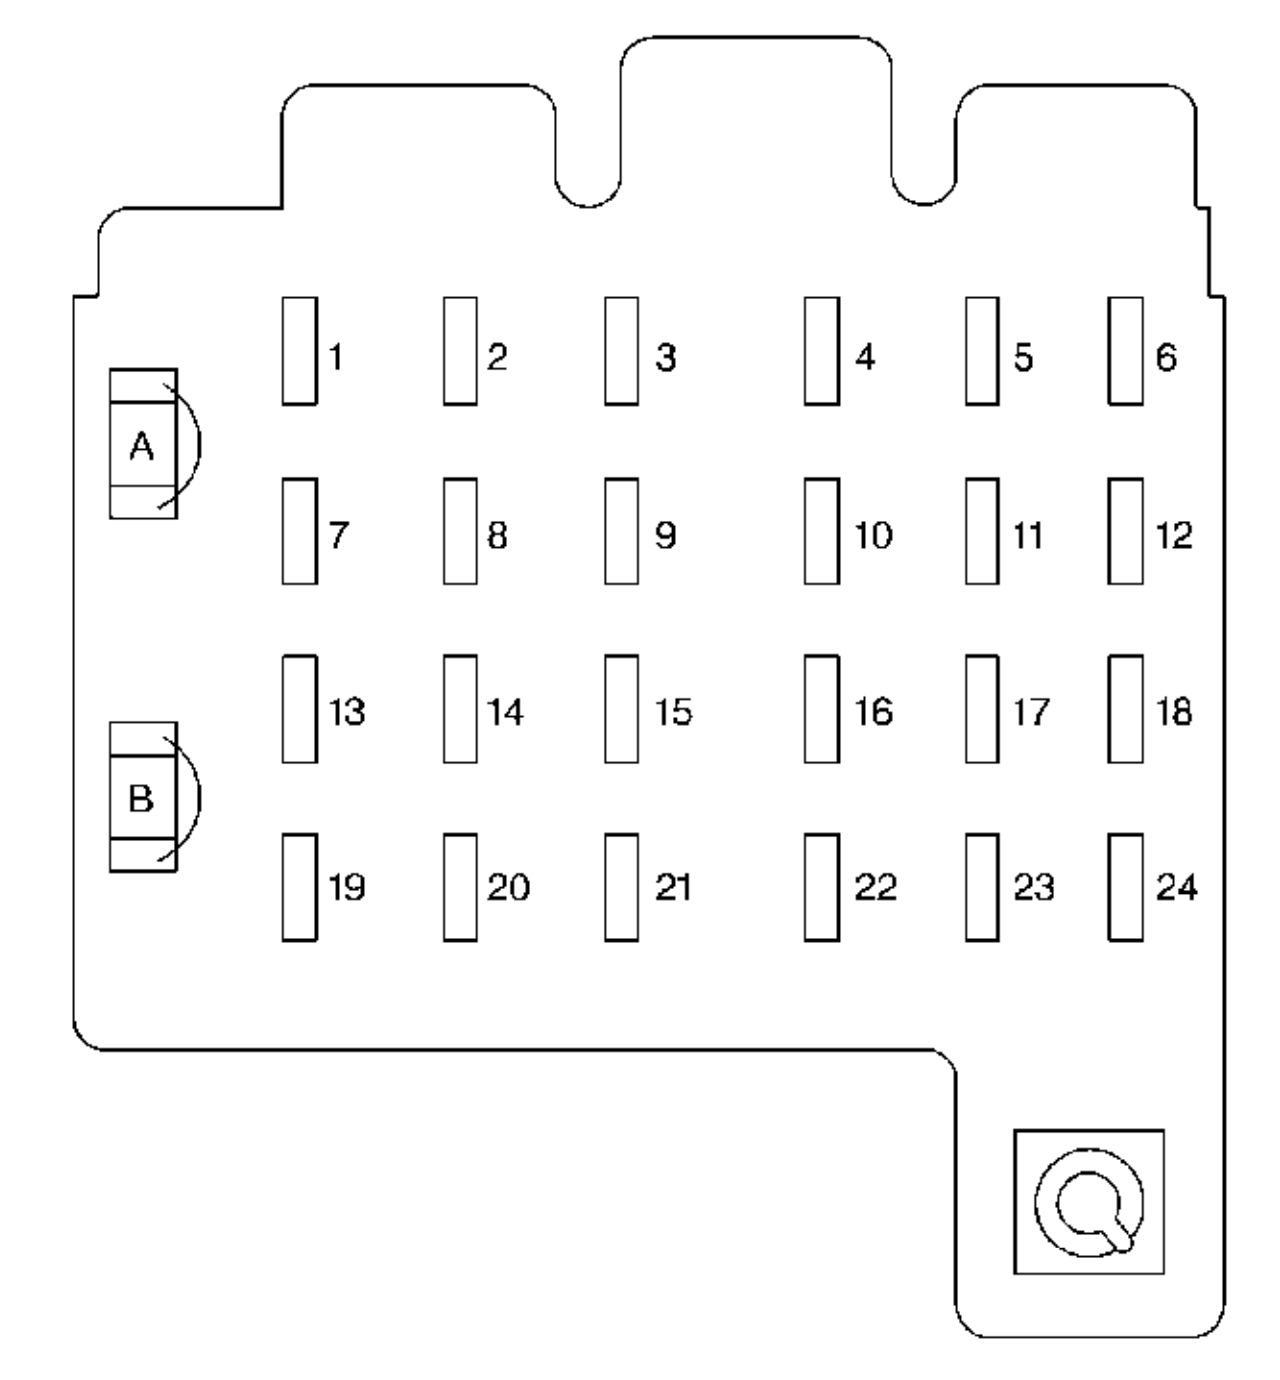 wrg 8538 1988 chevy s10 fuse block diagram. Black Bedroom Furniture Sets. Home Design Ideas